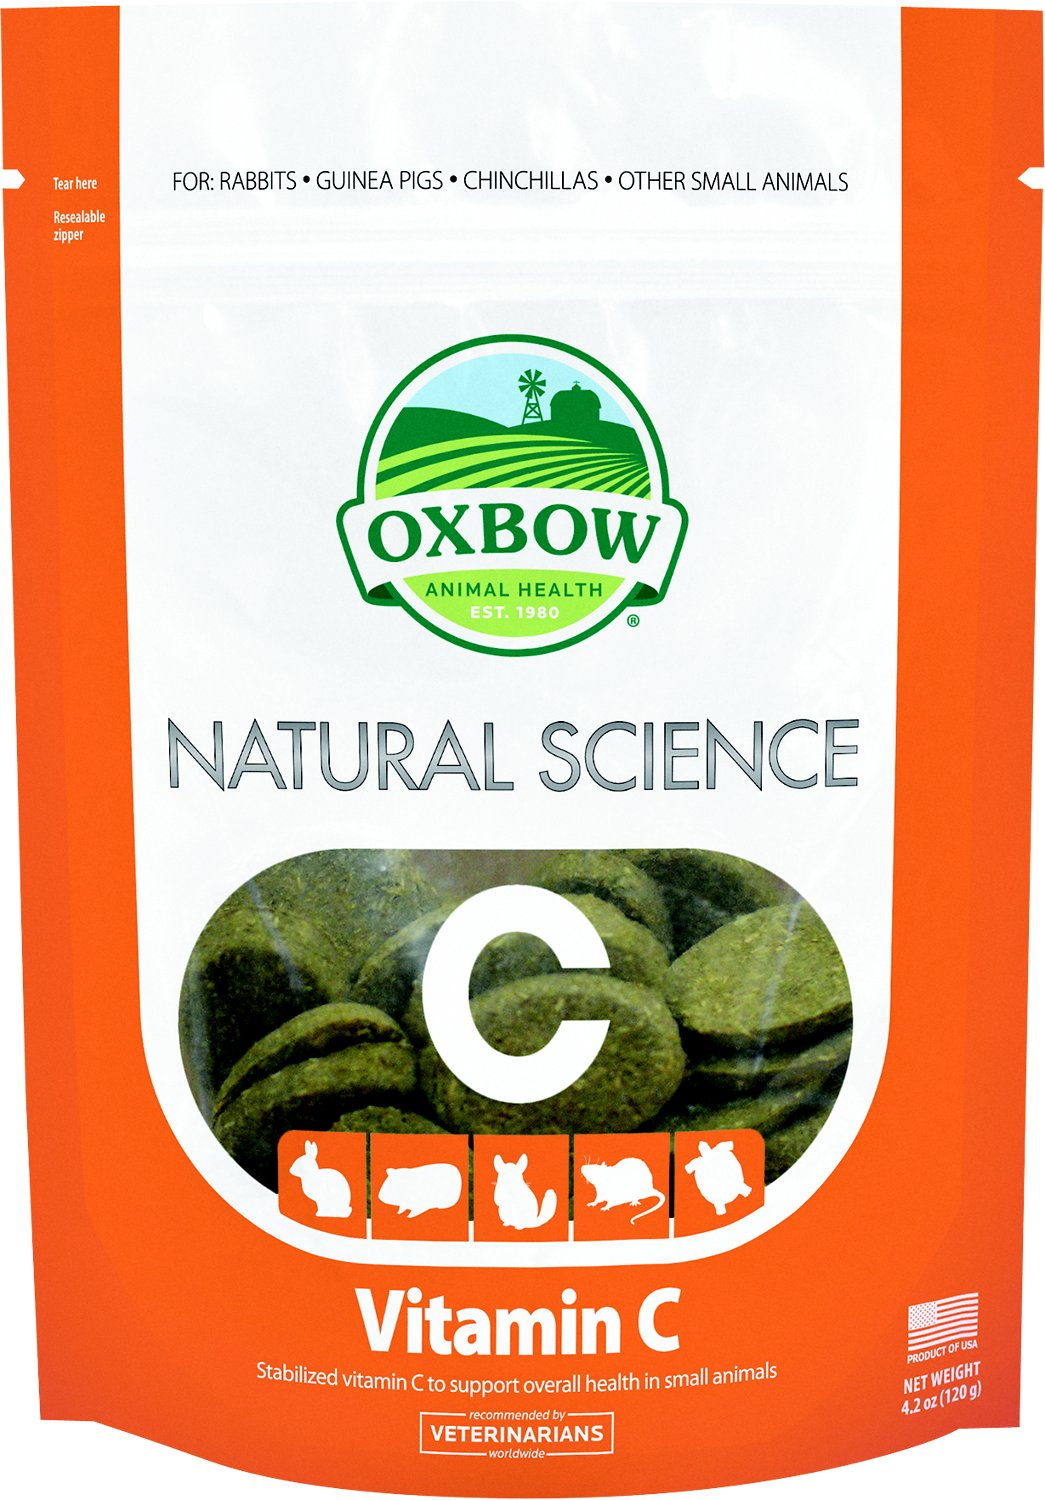 Oxbow Natural Science Vitamin C Small Animal Supplement, 60 count Image